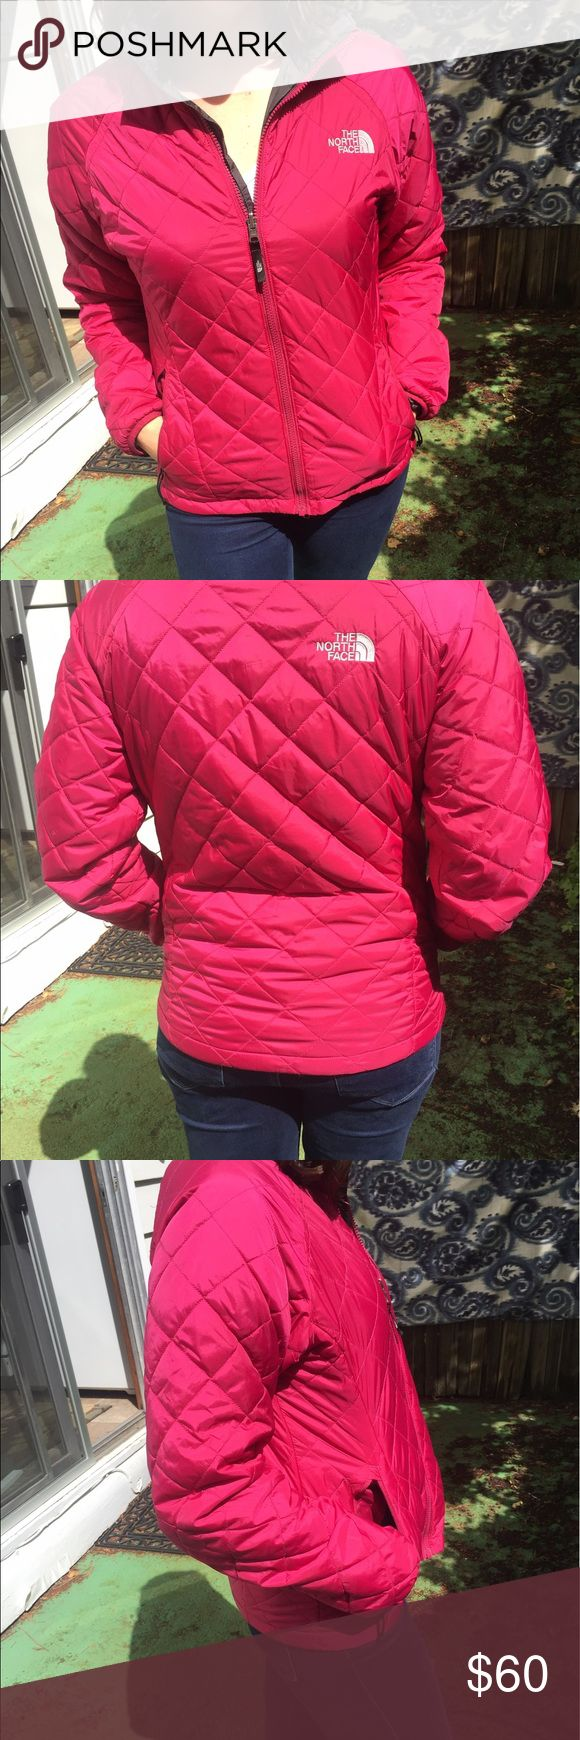 The North Face puffy pink snow jacket Puffy jacket from North Face. Great condition. It's a magenta pink color. Hits right at hips. Great for cold temps or snow. Size M but might also fit L. I originally bought it as a set with the other pink North Face in my closet. They can zip together. If you buy both I'll give you a discount! The North Face Jackets & Coats Puffers